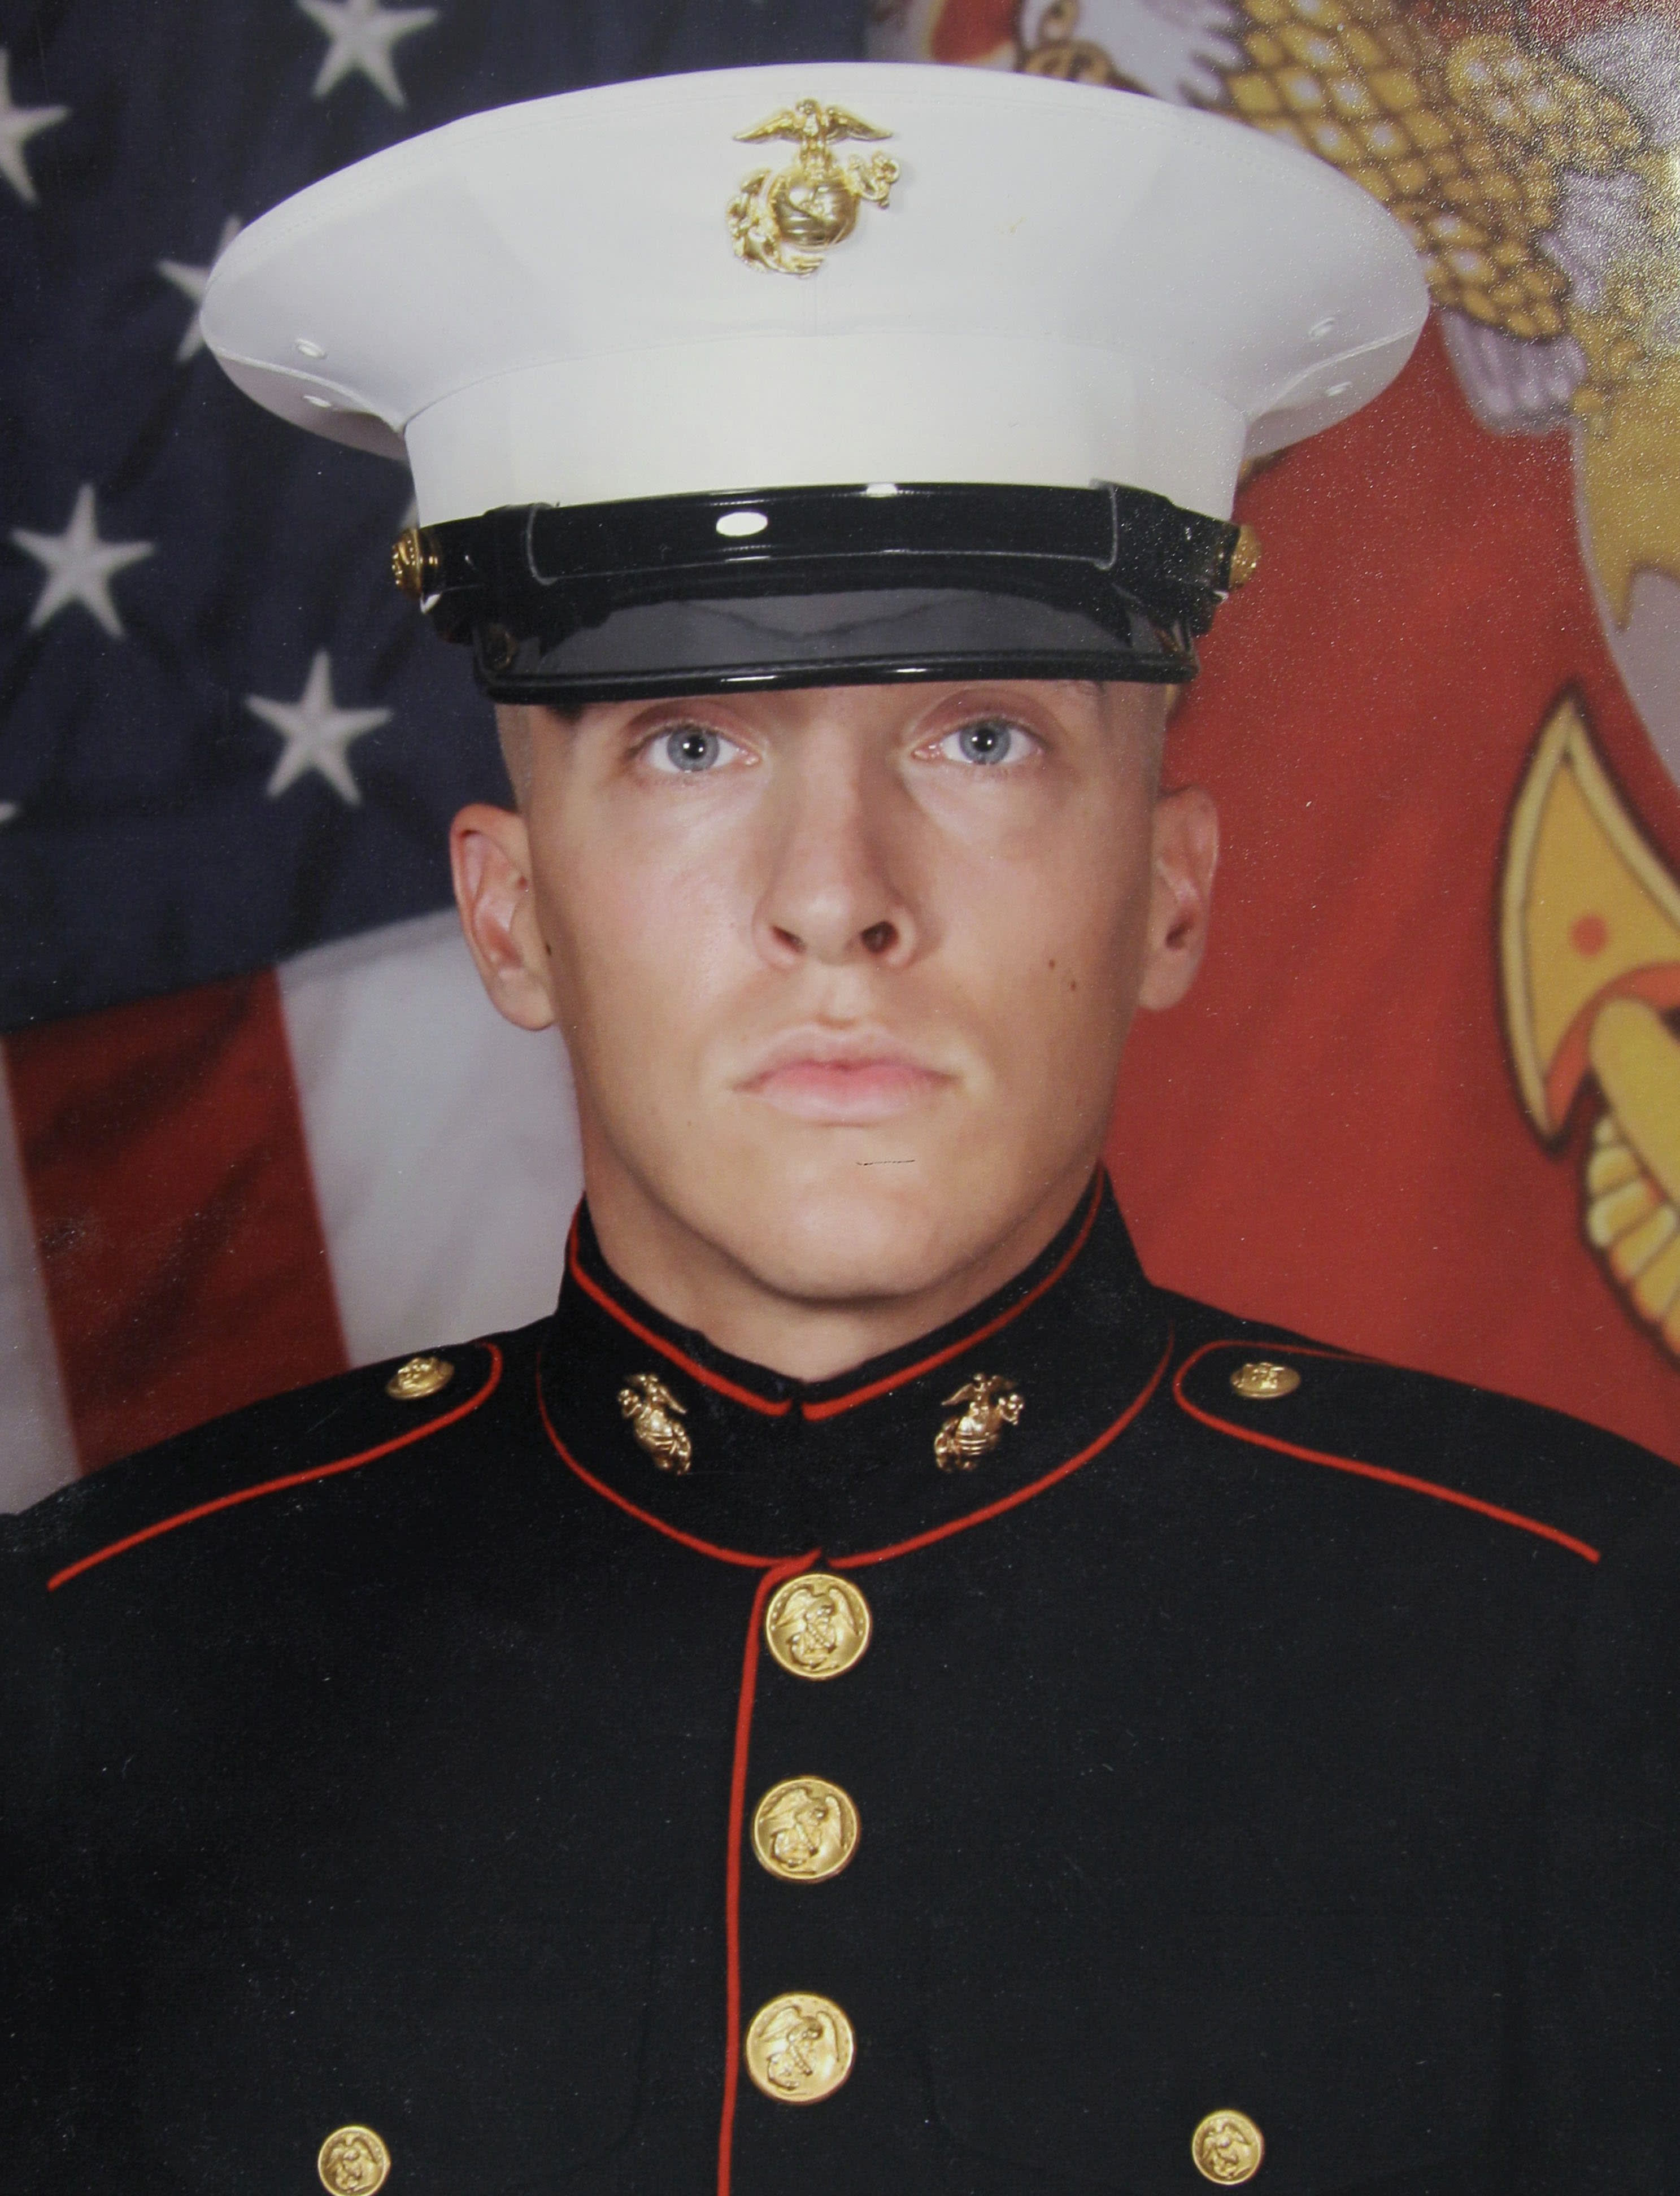 In this undated photo provided by the Department of Defense via the Wise family in Little Rock, Ark., Beau Wise poses in his U. S. Marine Corps uniform. Wise has had two brothers die in Afghanistan. (AP Photo/Department of Defense)